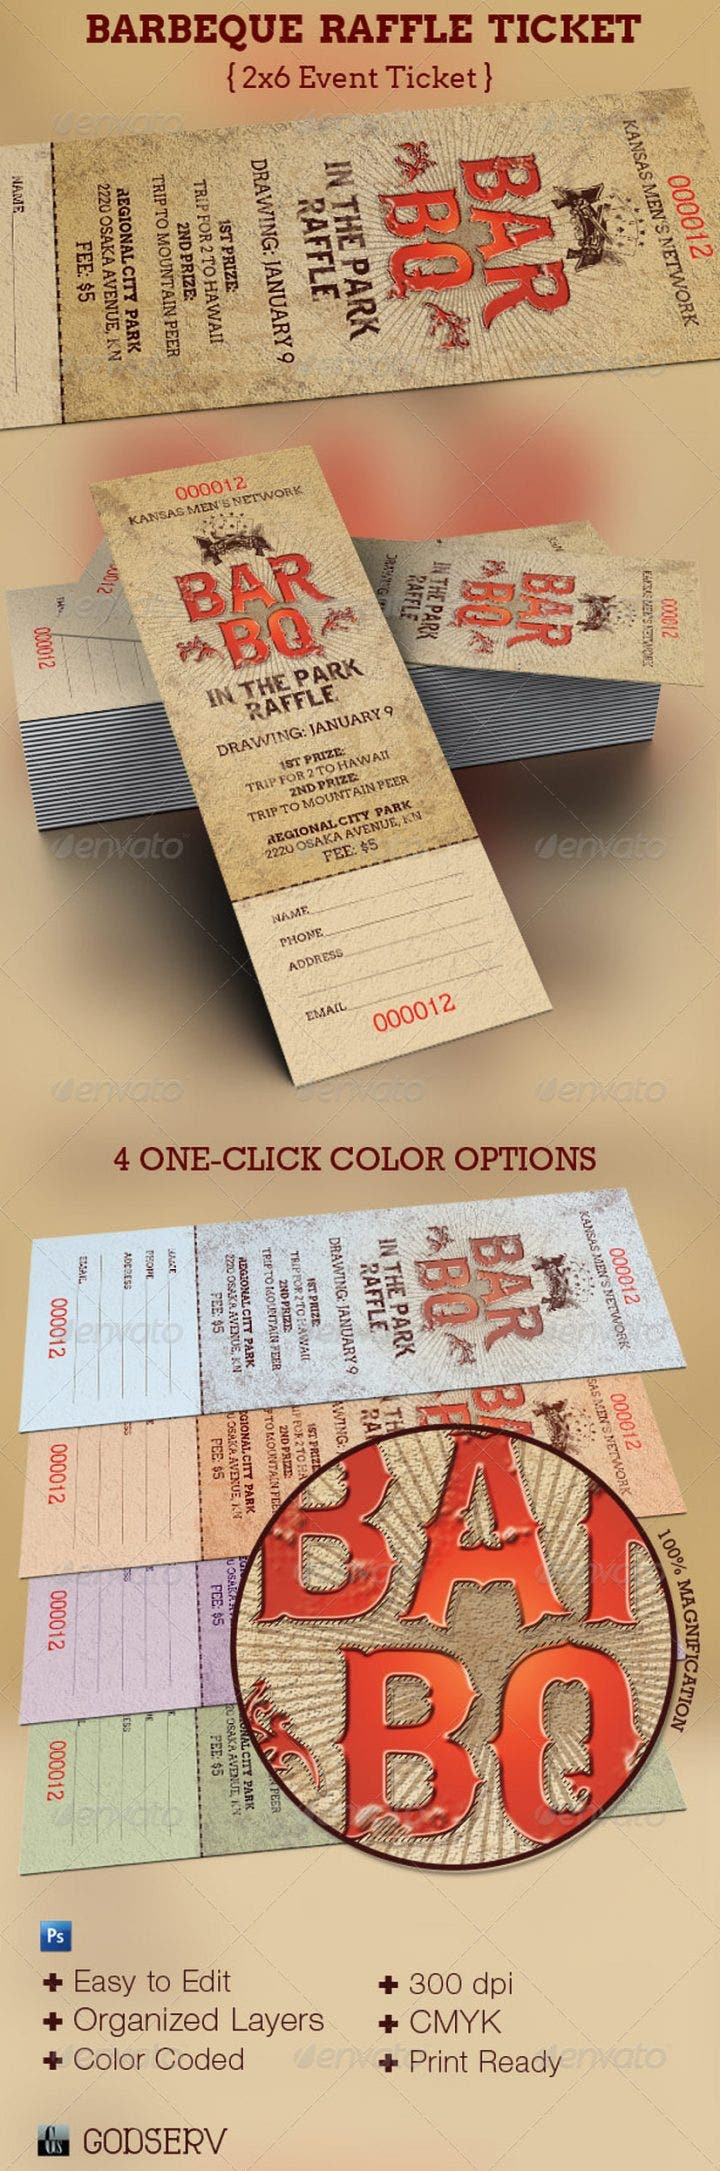 9 appetizing barbecue ticket templates free premium templates. Black Bedroom Furniture Sets. Home Design Ideas